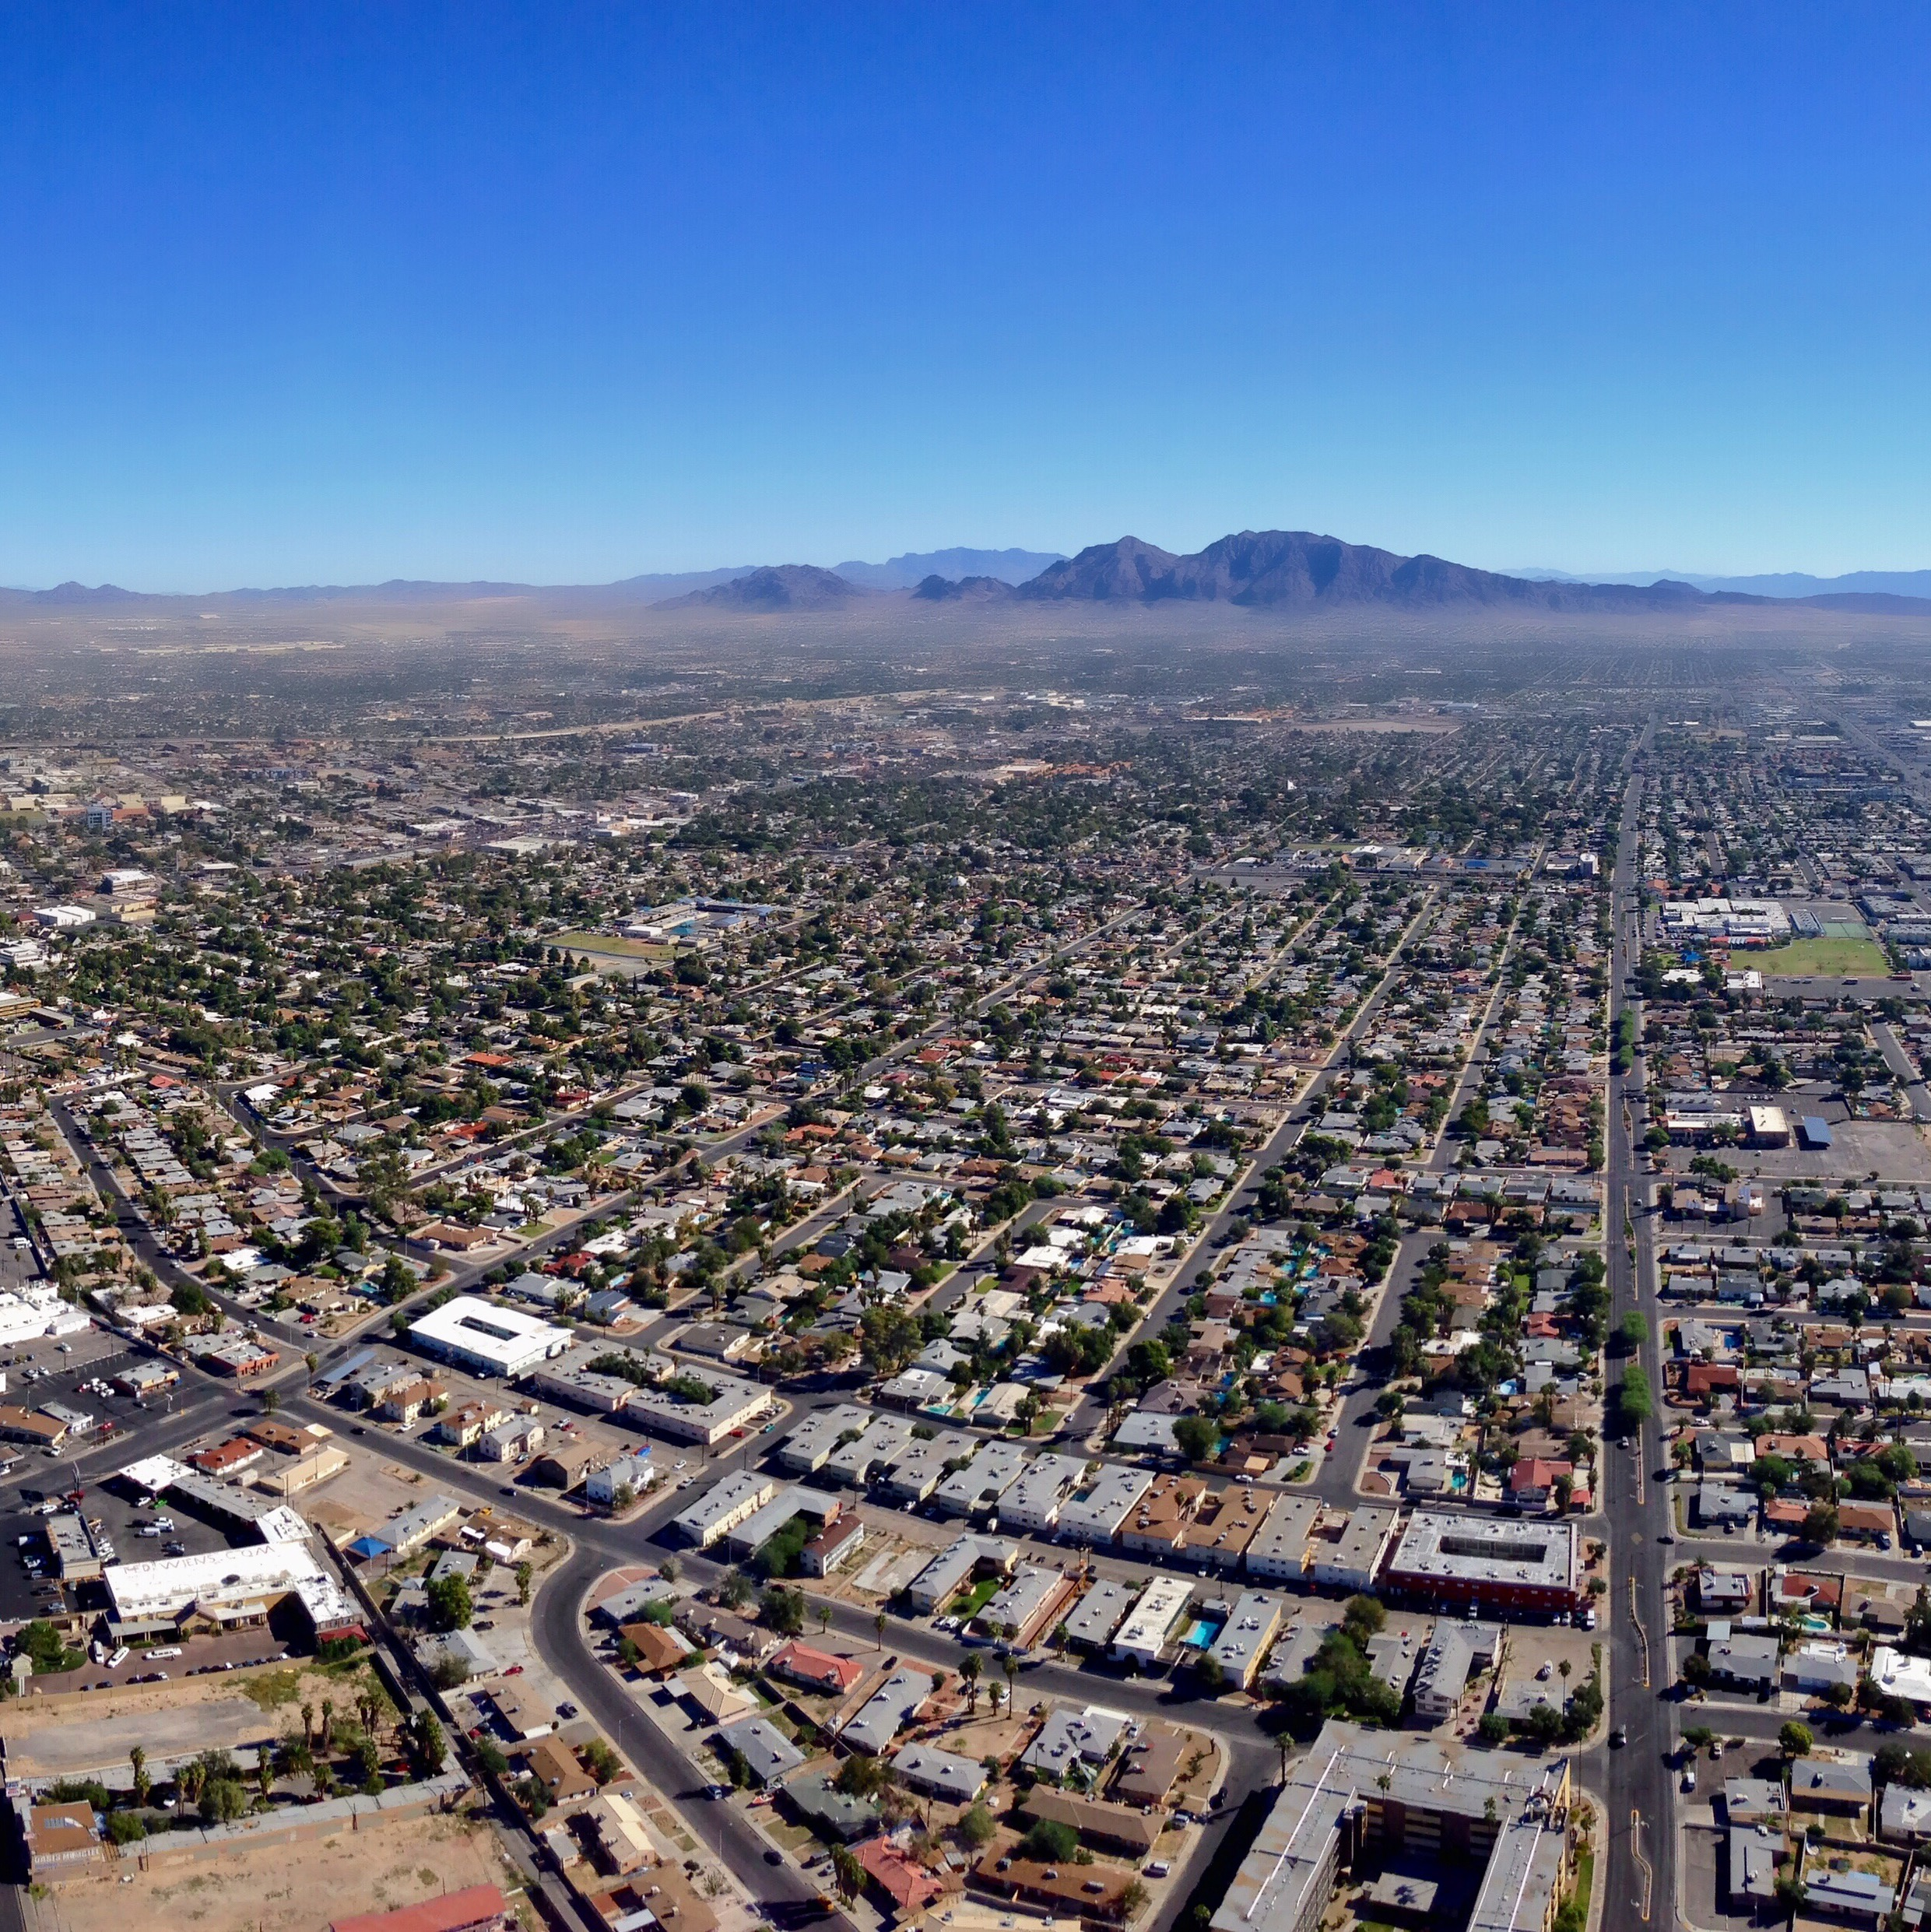 view-from-the-stratosphere-tower-las-vegas.jpg